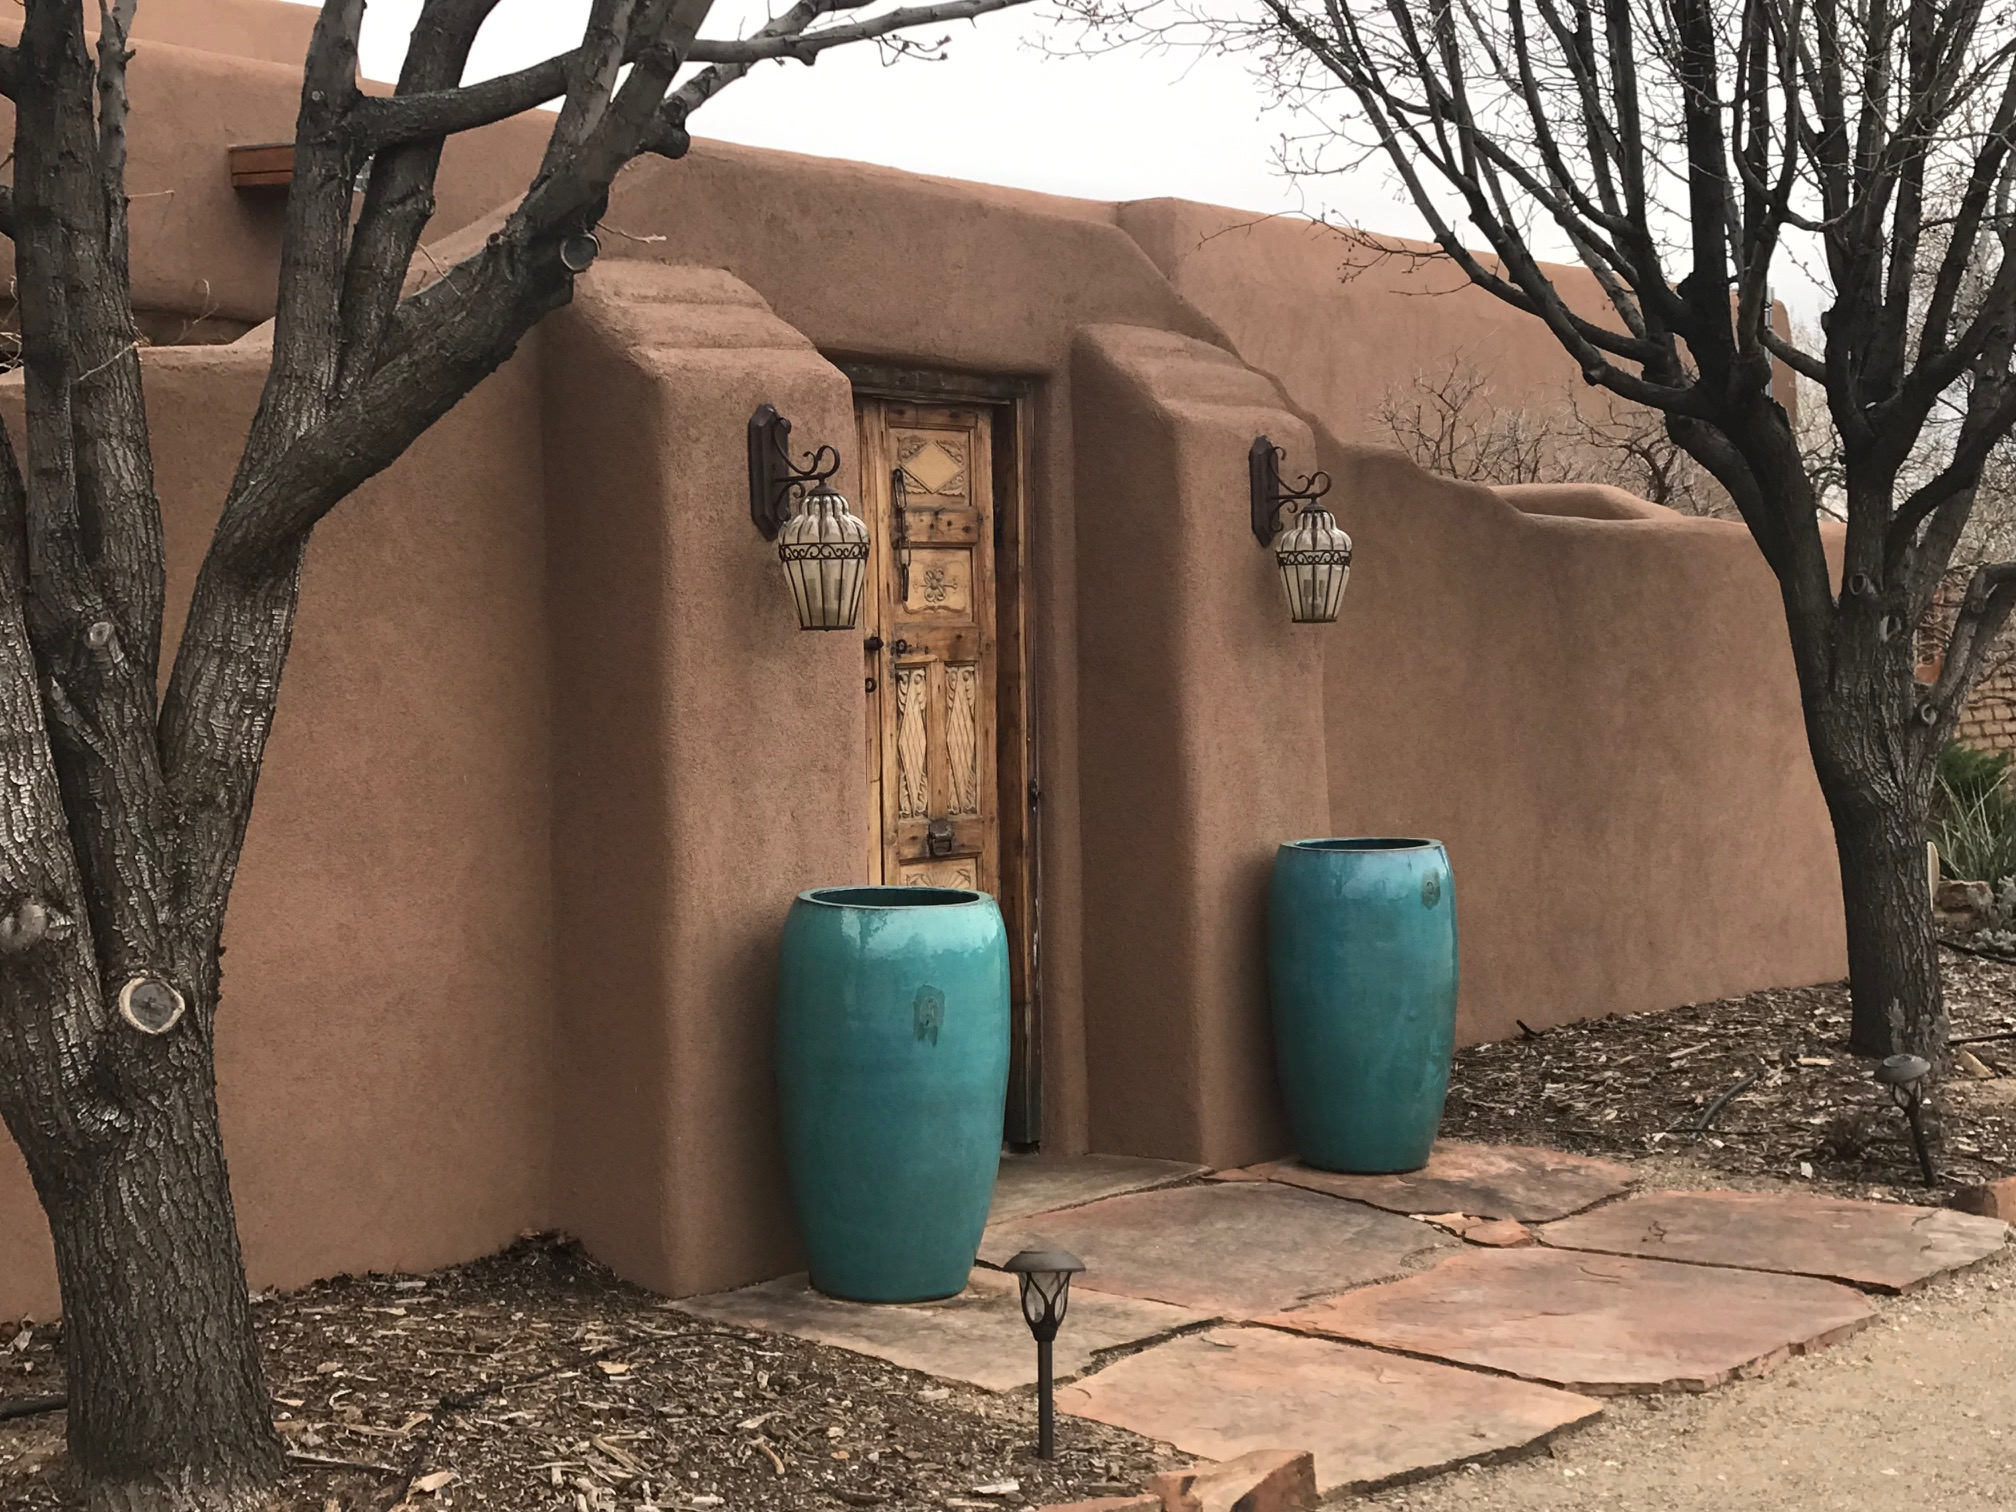 Open House Sat, Mar 23,1-3pm. South End Corrales, Character laden Santa Fe Style New Mexican Casa..high beamed ceilings, brick floors, light flooded row of French doors, corbels, hand carved doors, lighted nichos, adobe wall, antique gates, doors, vanities, diamond plaster two way kiva fireplace. Gourmet kitchen, 6 burner Wolf stove, pot filler, 4 seat breakfast bar, adjoining herb garden. Owner's Suite, kiva fireplace, 2 walk-in closets. 3 bedrooms with potential for 4th bedroom, office & large studio. Expansive East Courtyard is a verdant oasis of flowers, trees & bushes; the perfect setting for entertaining a grand event, even a ramada for the band! Horse set up with hay storage, tack room, and wash rack. Raised bed gardens, fruit trees.Expansive adobe perimeter wall. Quiet cul de sac. 25 minutes to Airport; 7 minutes to Cottonwood Mall. Money Magazine Voted Corrales Top 20 best places to live in USA & Horse Capital of NM!